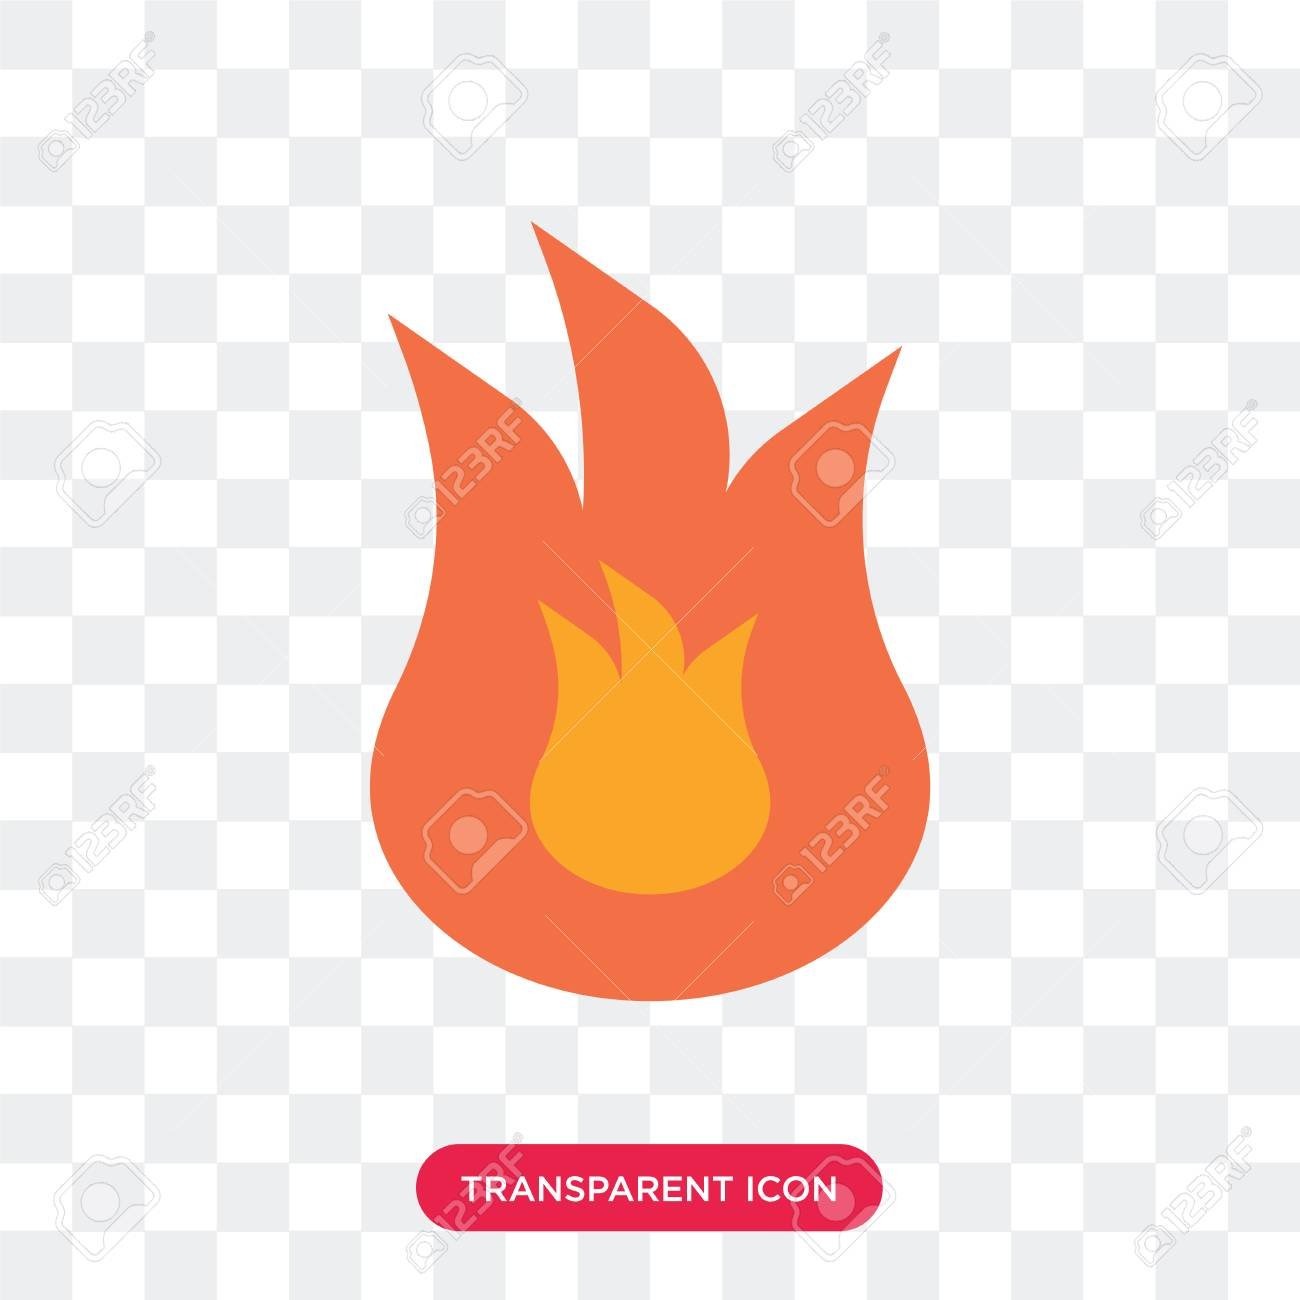 Fire vector icon isolated on transparent background, Fire logo